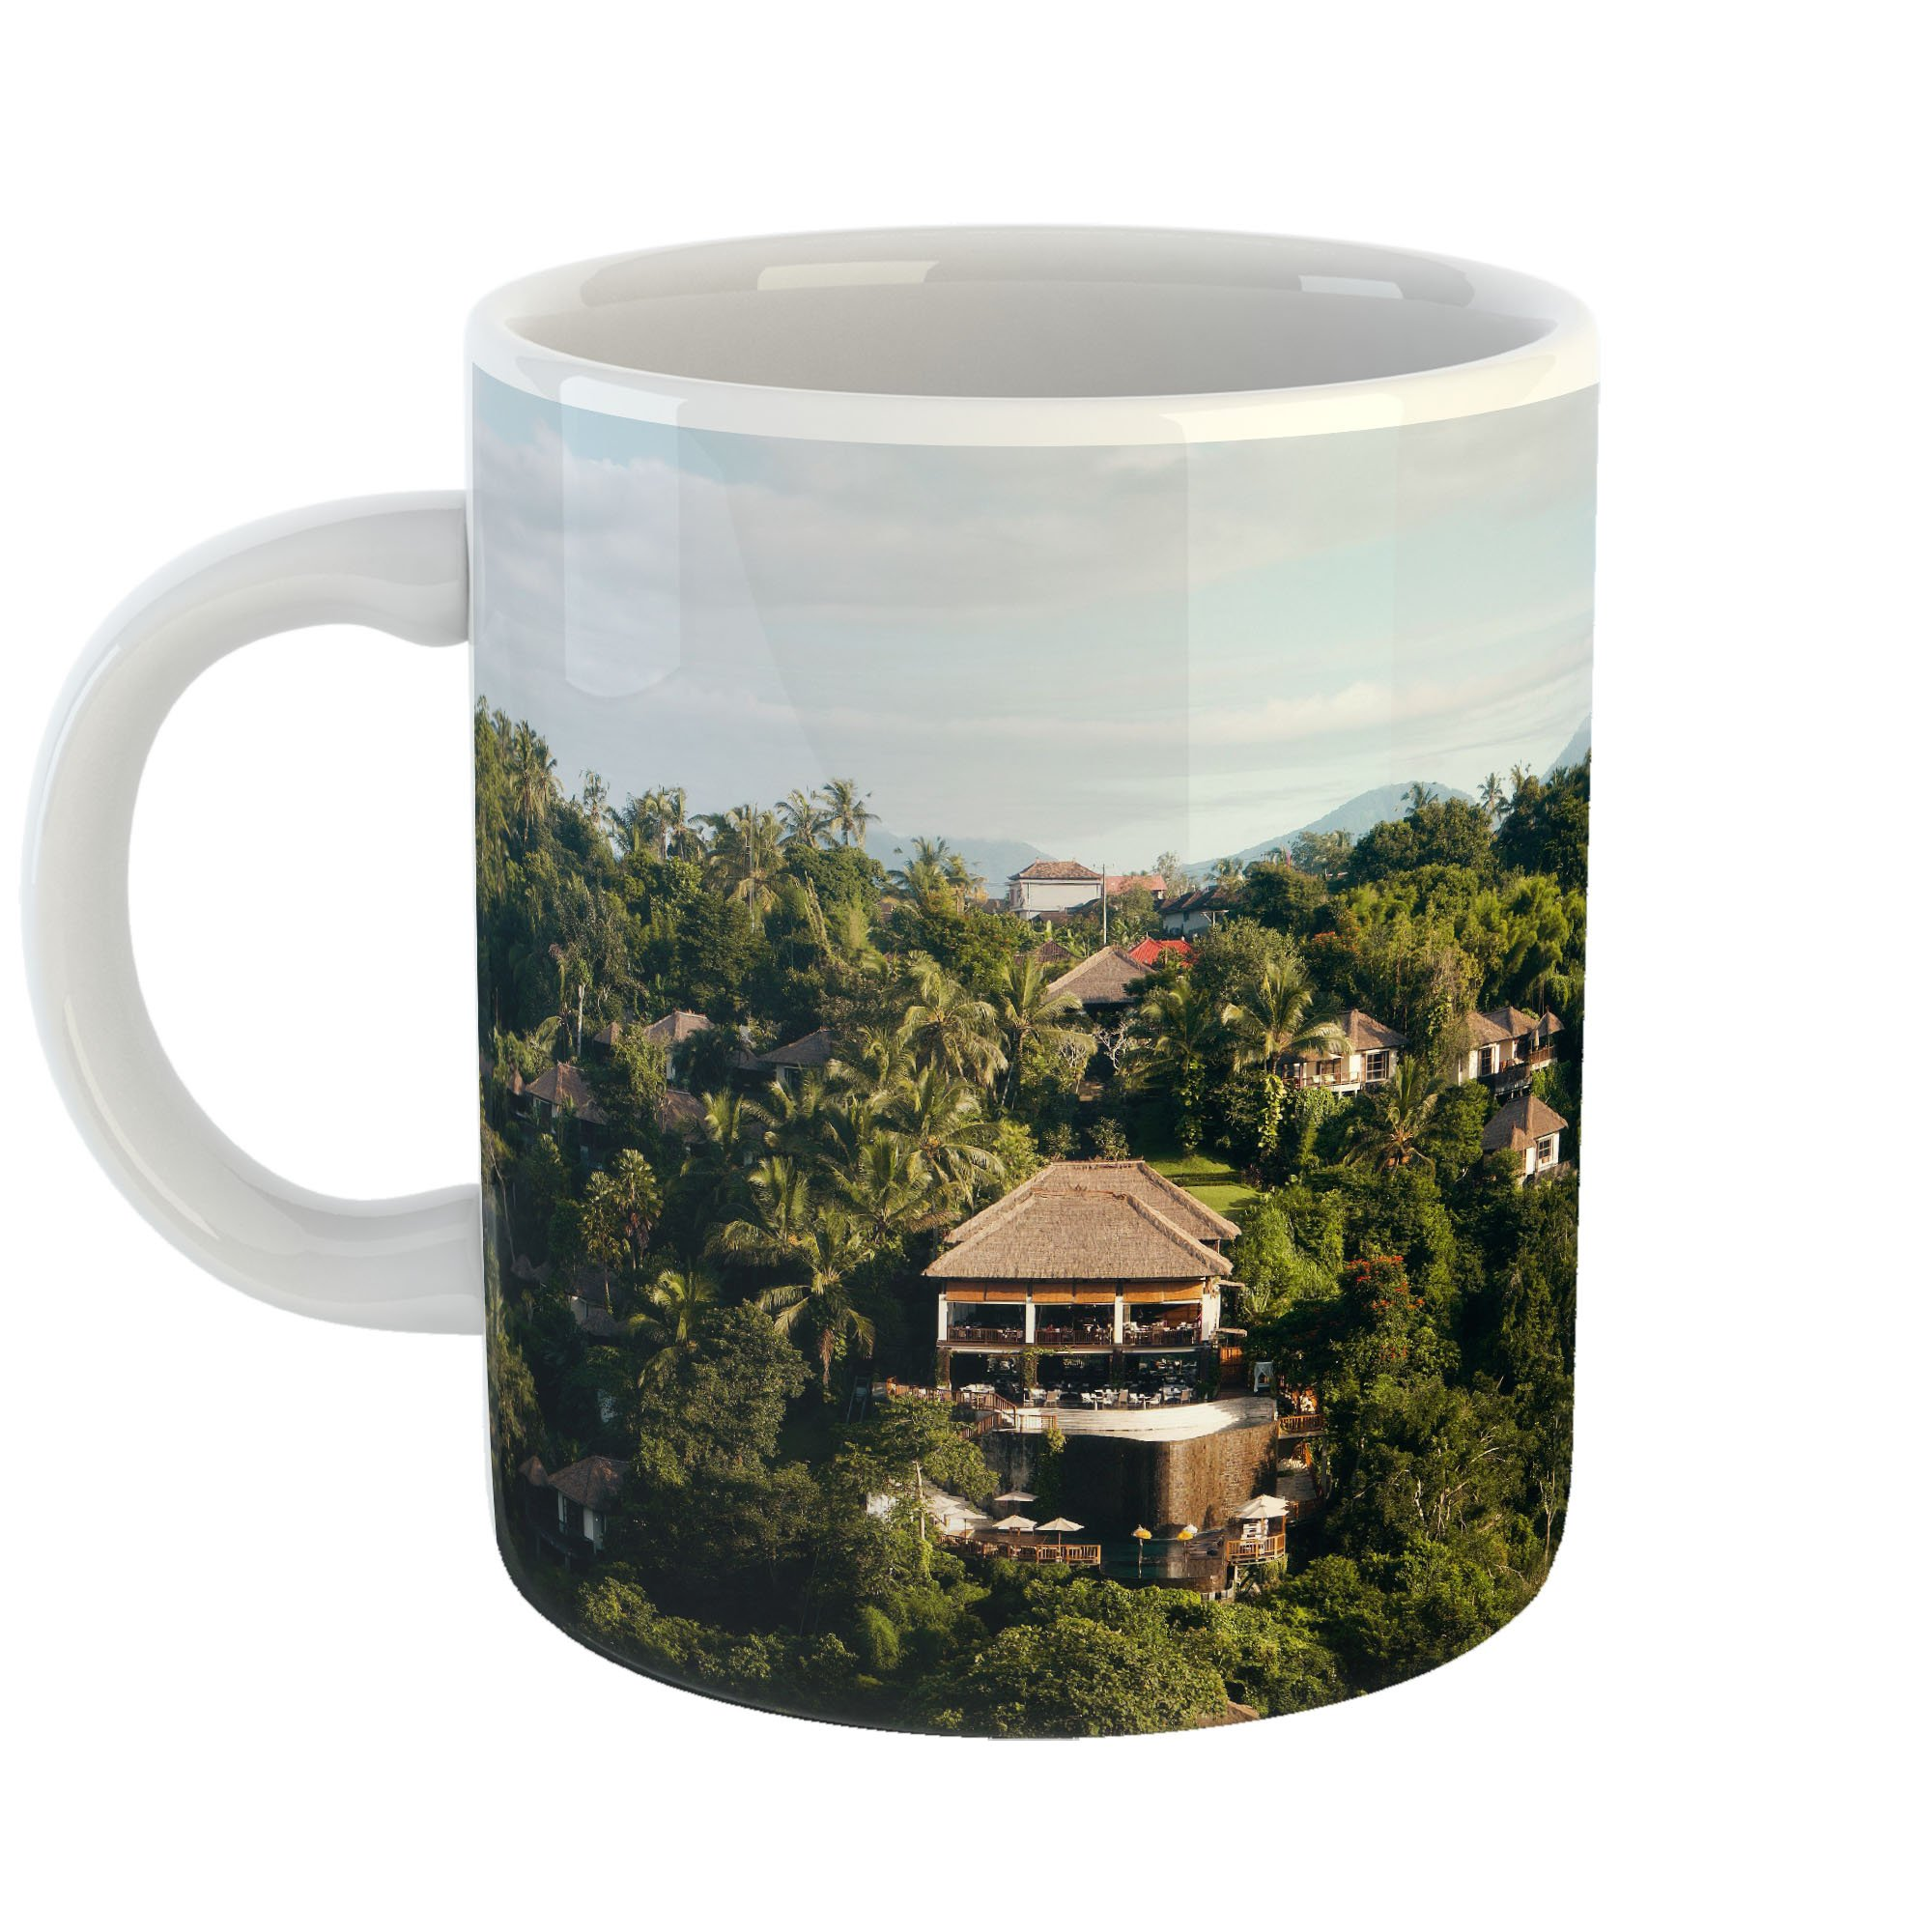 Westlake Art - Hotel Luxury - 11oz Coffee Cup Mug - Modern Picture Photography Artwork Home Office Birthday Gift - 11 Ounce (AB80-DD8E9)